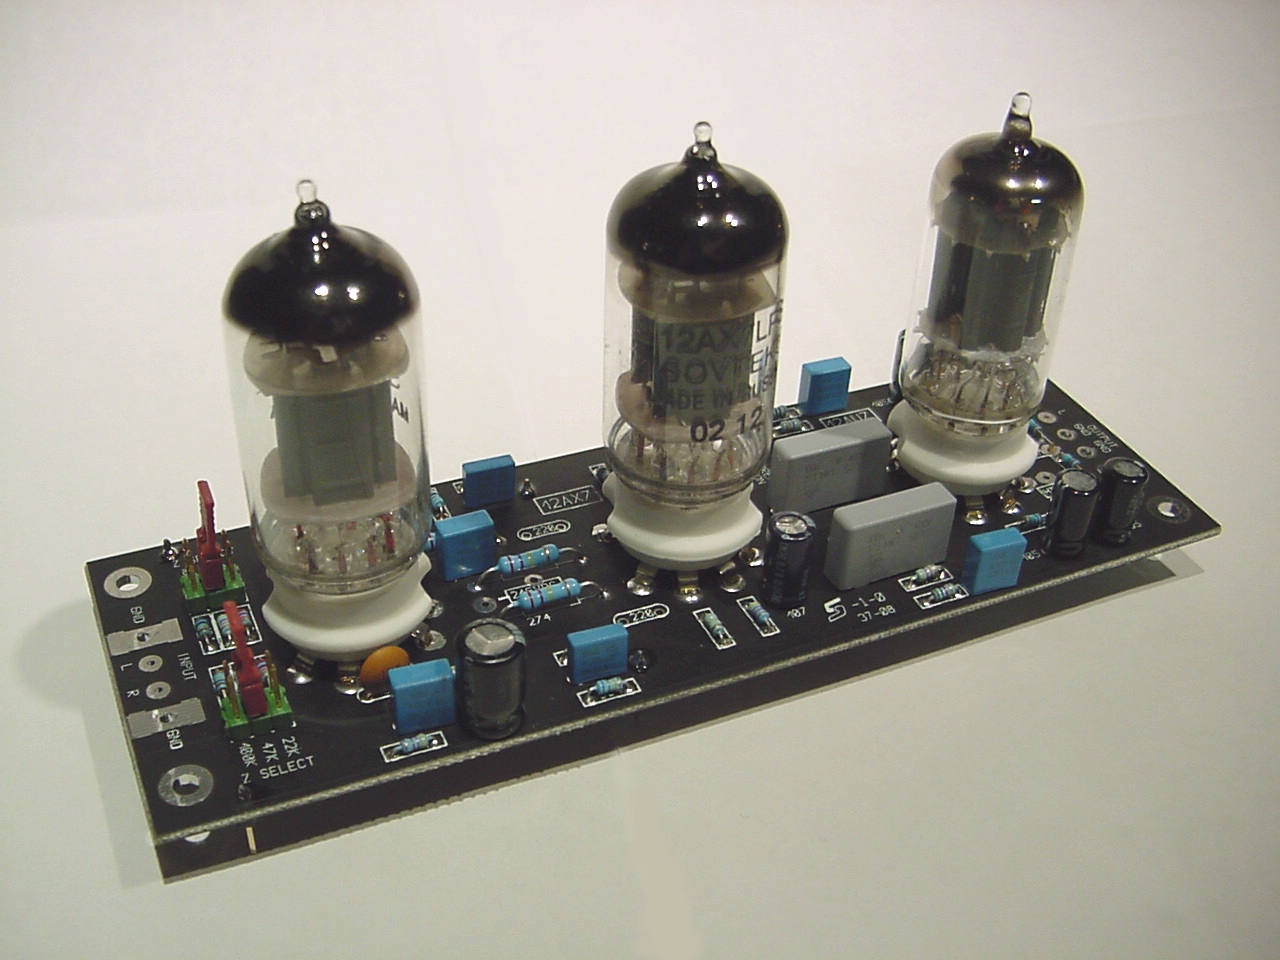 amplifier wiring kit radio shack flasher unit diagram vacuum tube schematic   get free image about